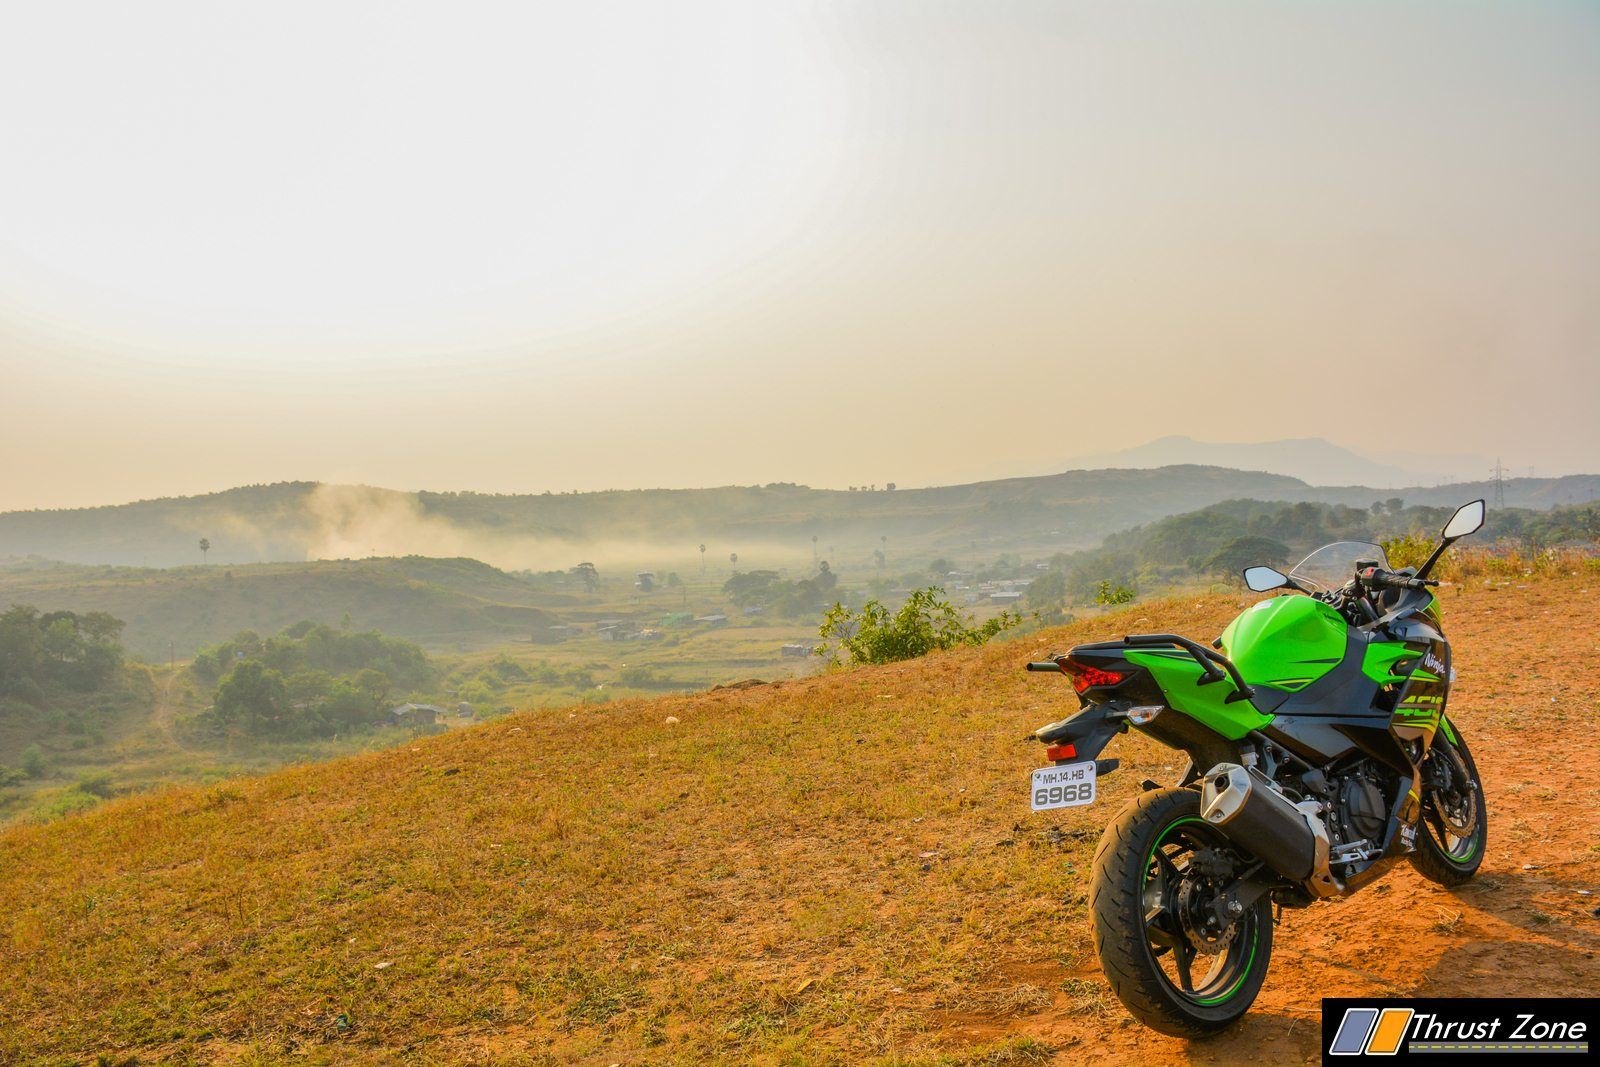 https://www.thrustzone.com/wp-content/uploads/2018/11/2018-Kawasaki-Ninja-400-India-Review-27.jpg